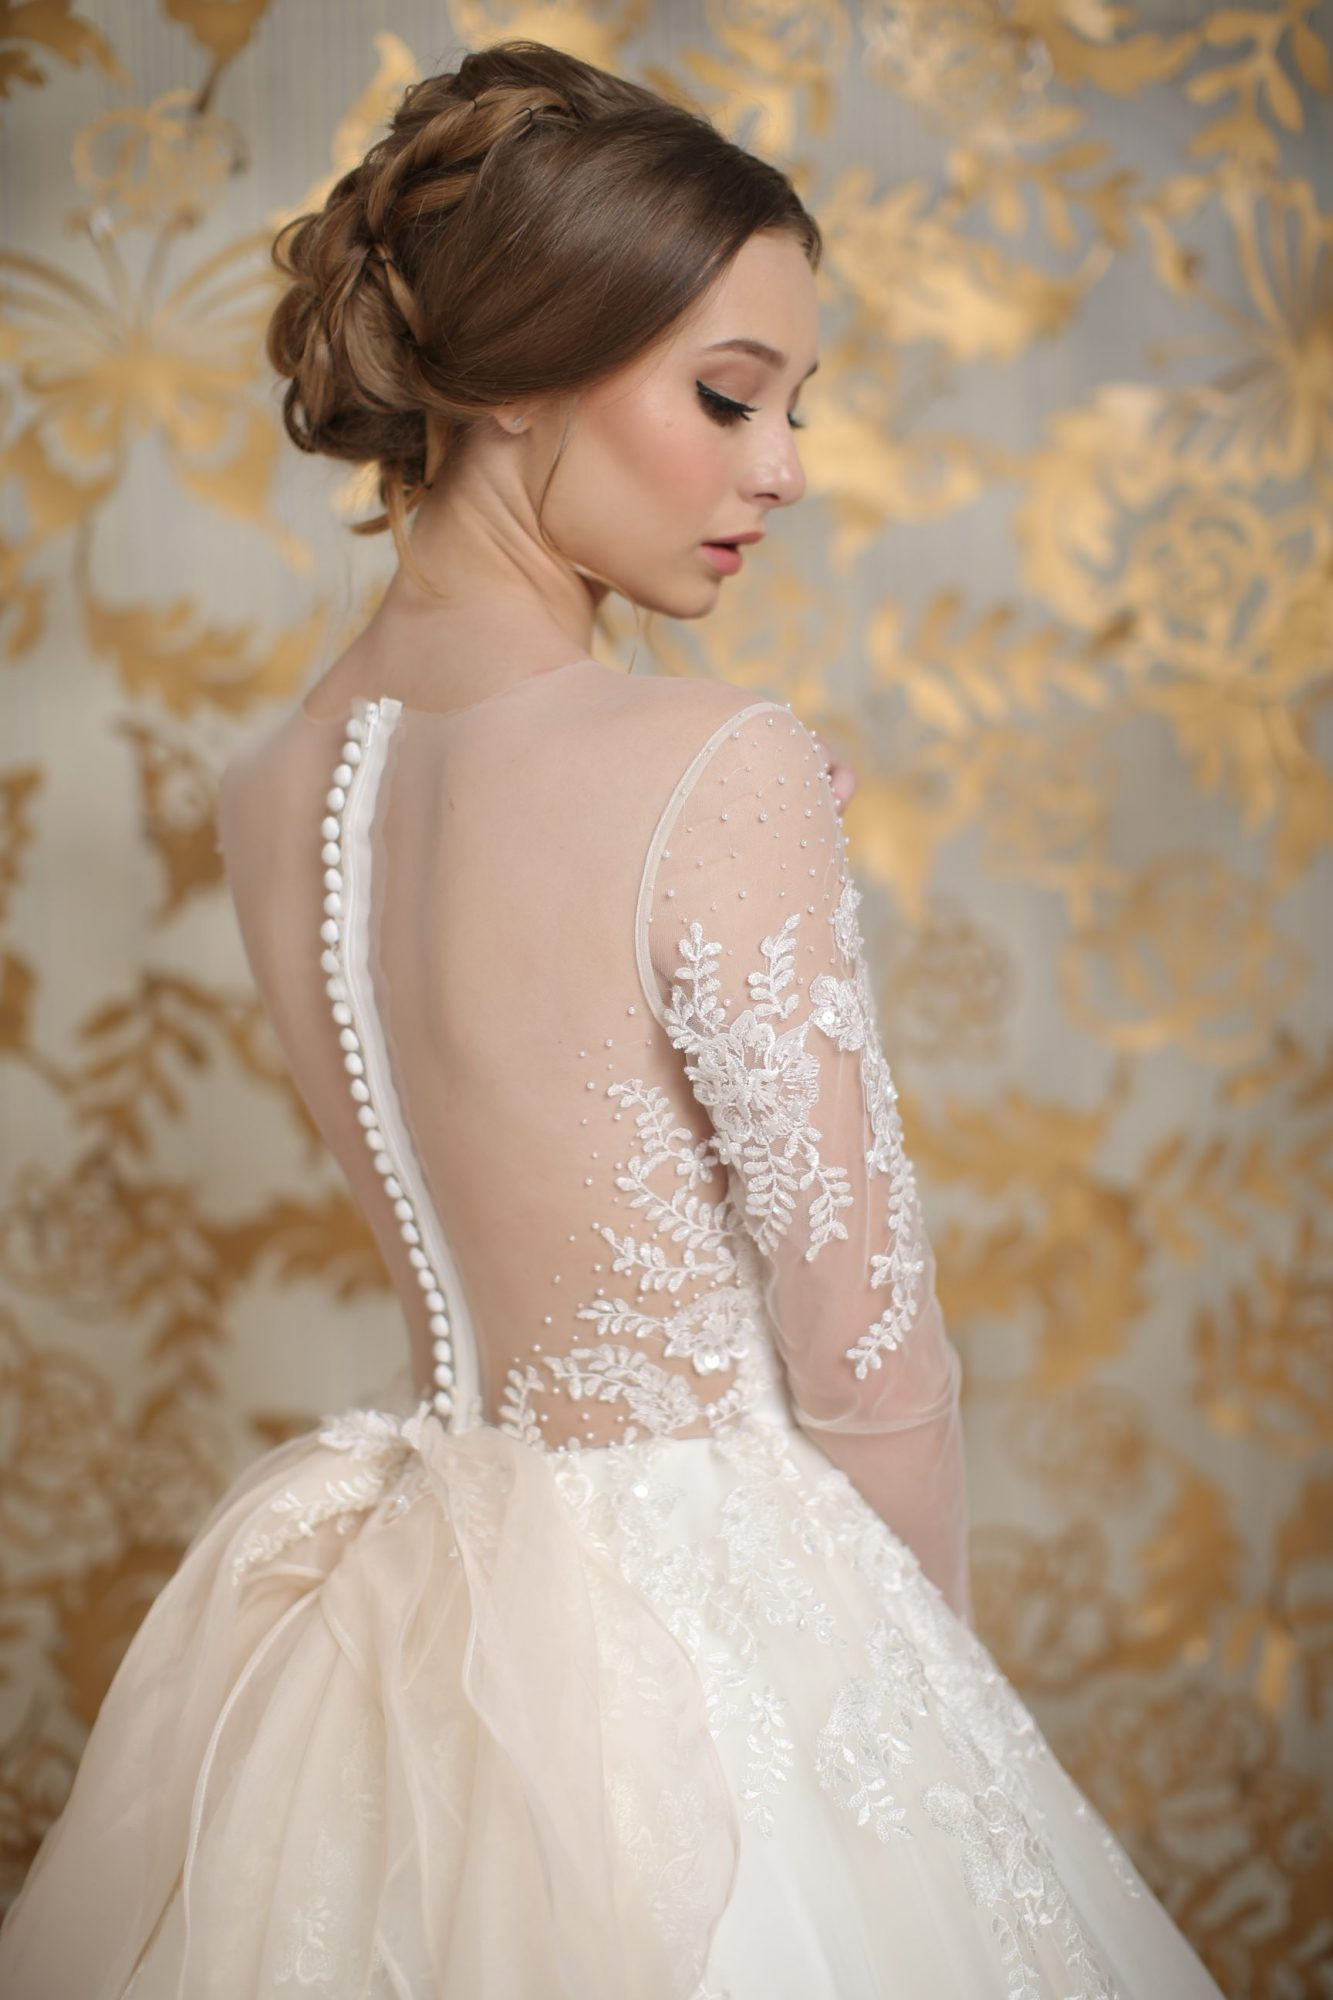 Bridal gown by Laurent Agustine by LOTA